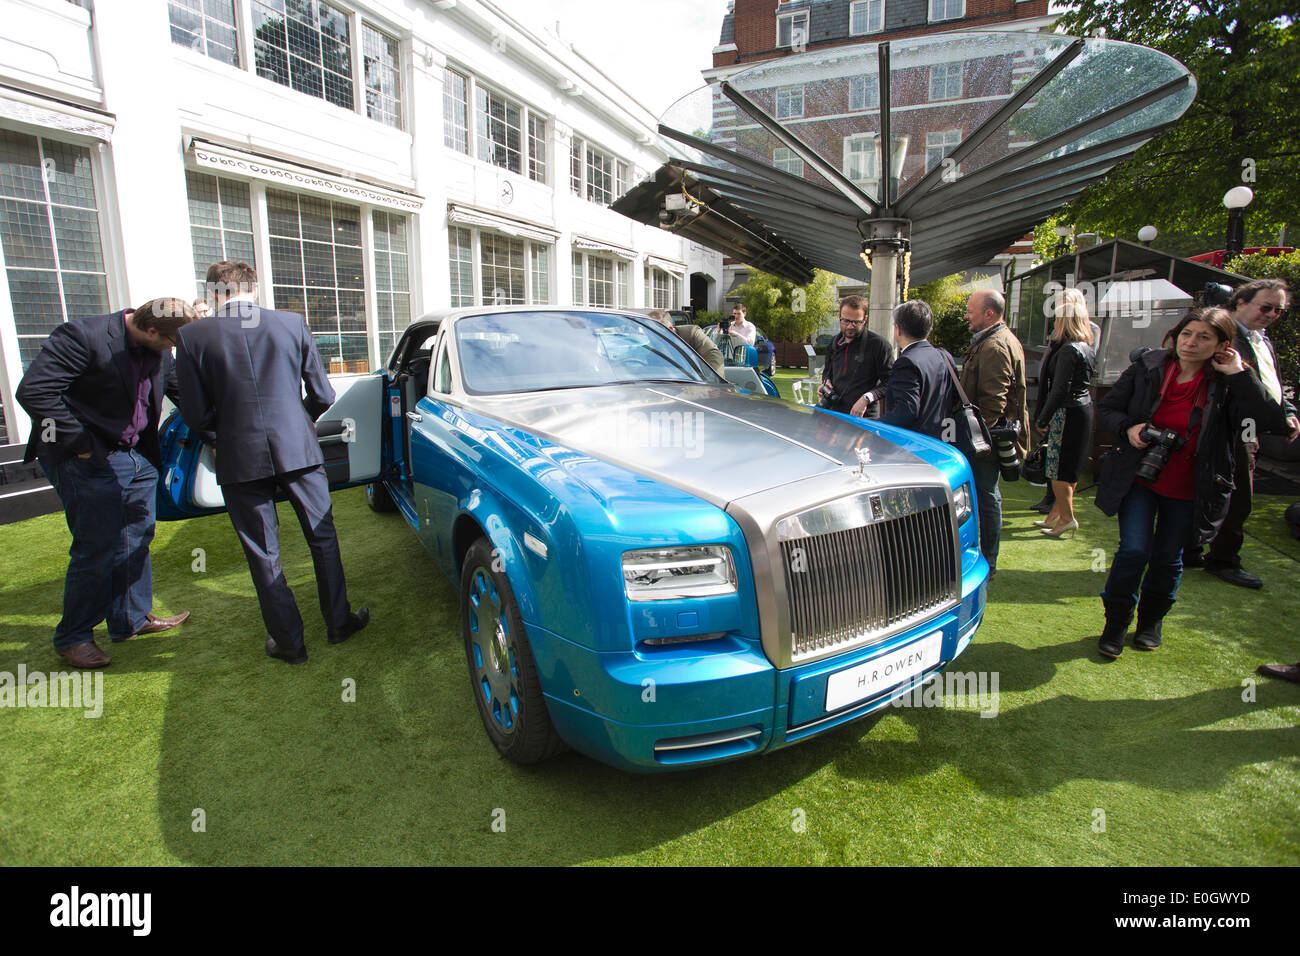 Rolls Royces Stock Photos & Rolls Royces Stock Images - Alamy